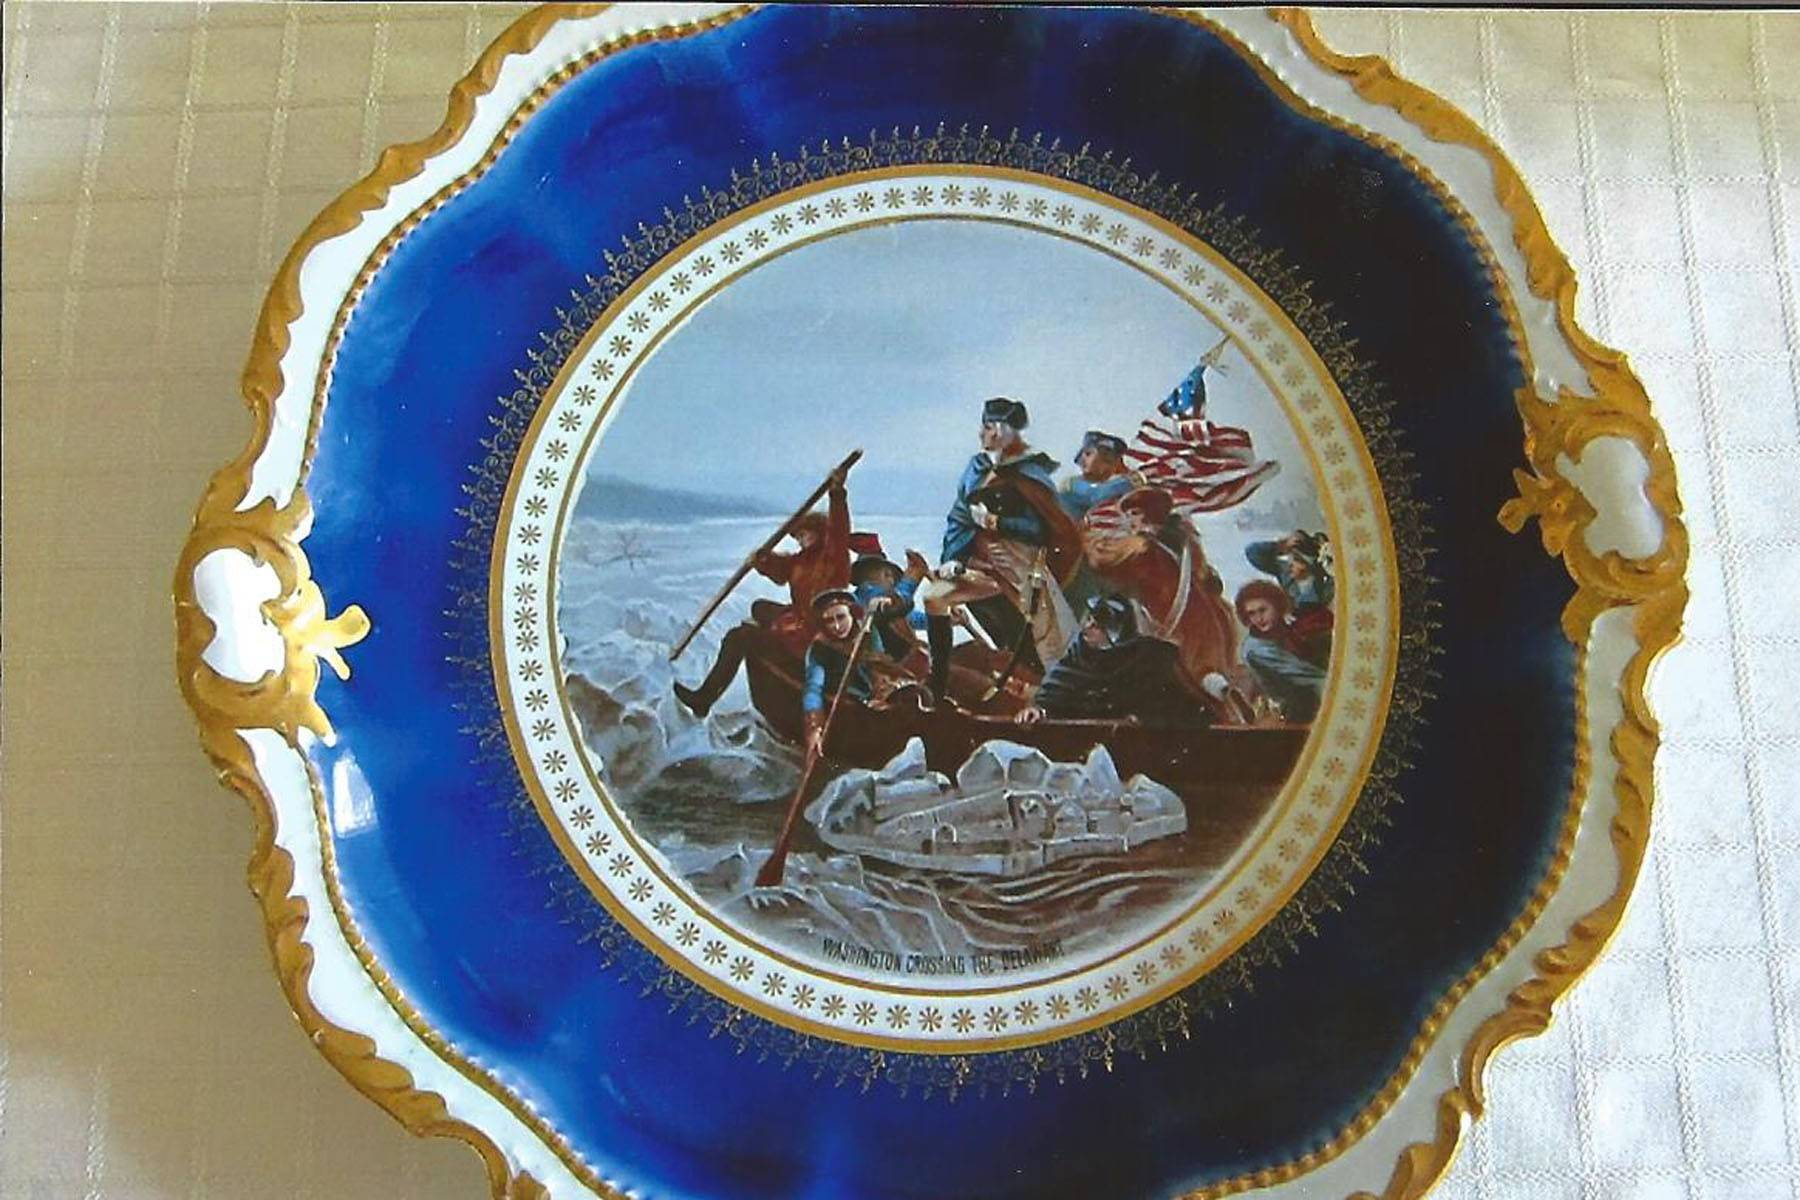 Empire China was made by Steubenville Pottery in Ohio from 1879 to 1959.